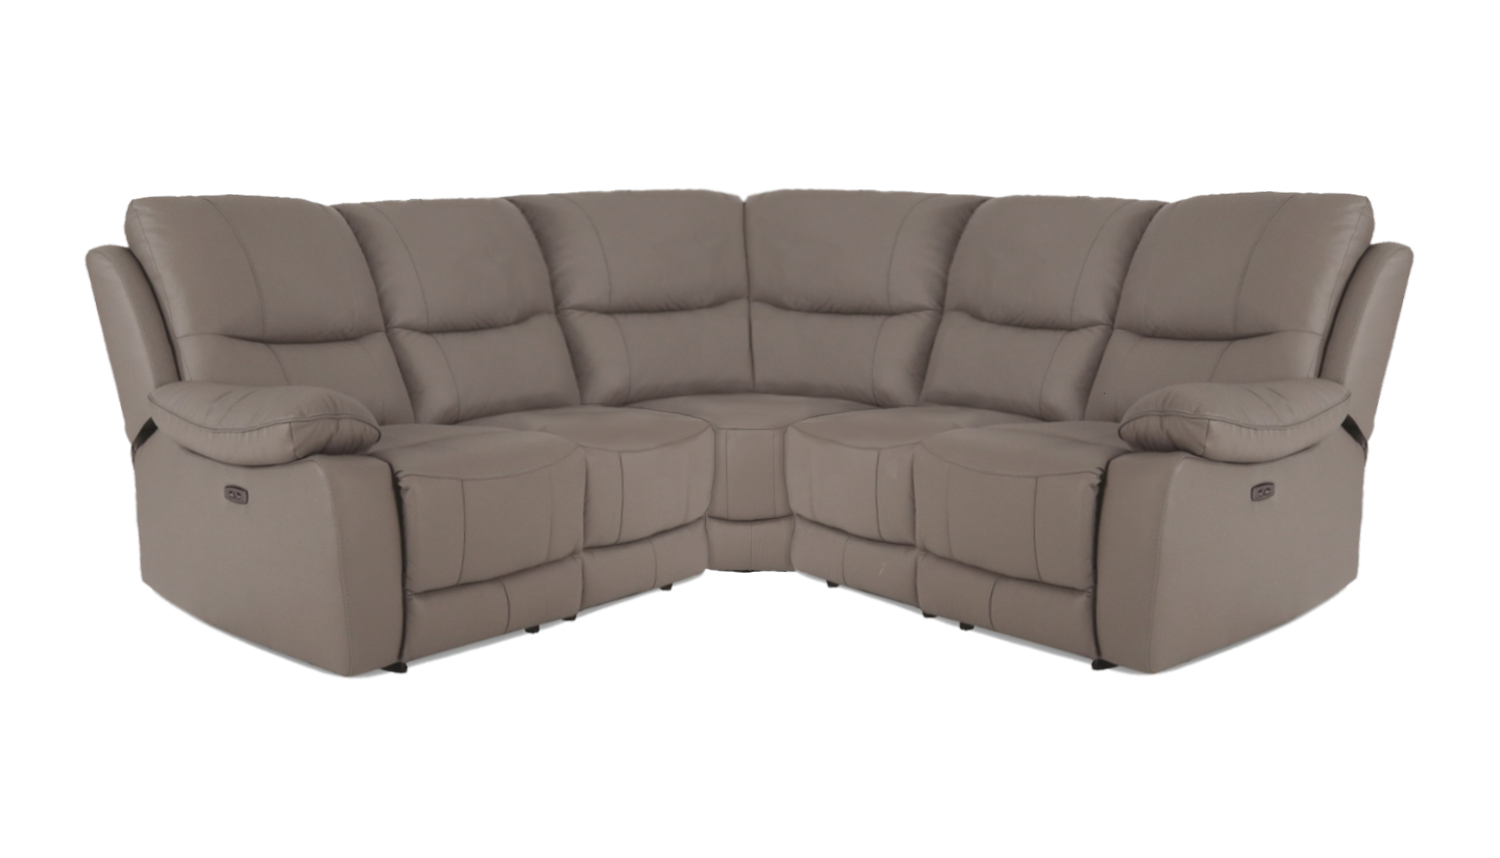 Tivoli 2 Corner 2 Power Recliner Corner Group